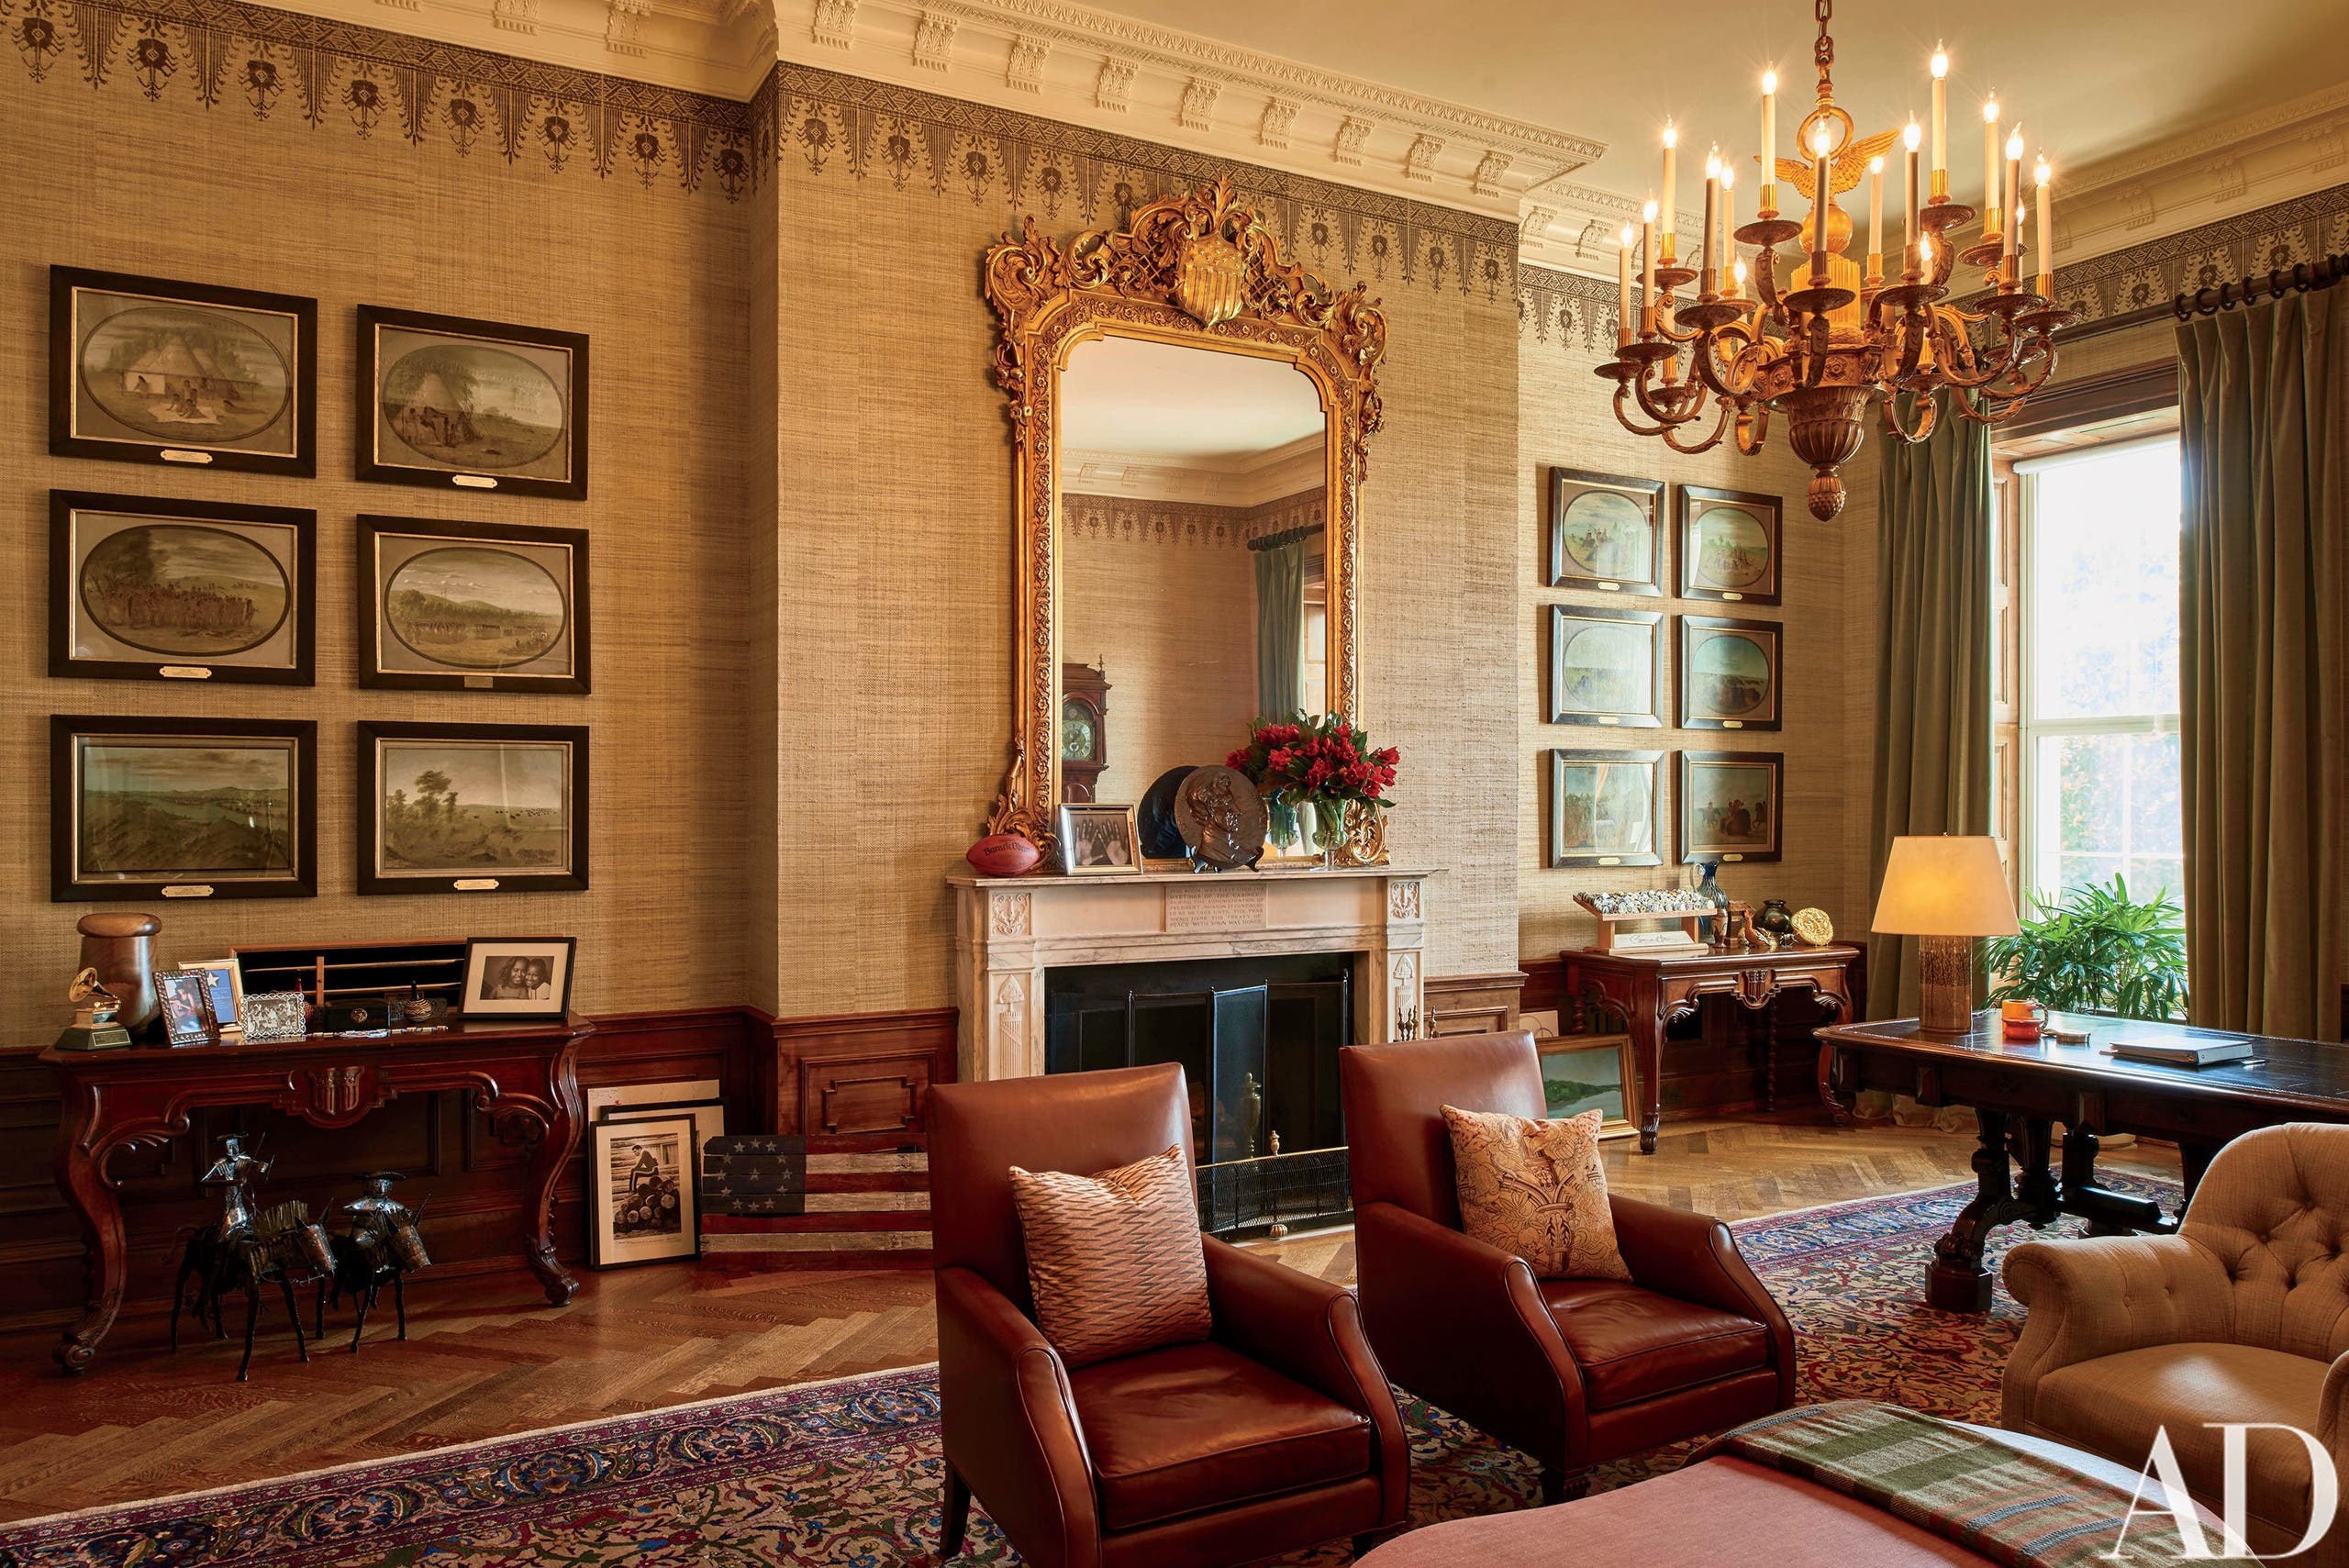 """This image provided by Architectural Digest shows The Treaty Room in the White House in Washington in August 2016. The Treaty Room is filled with memorabilia including one of President Barack Obama's two Grammy Awards, family photos, and a personalized football. It's also where Obama often retreats late at night. He uses the room's namesake table, which has been in the White House since 1869, as a desk. Obama likes to say the White House is the """"people's house."""" The Architectural Digest photos are giving the public its first glimpse of private areas on the second floor of the White House that Obama, his wife, Michelle, daughters Malia and Sasha and family dogs Bo and Sunny have called home for nearly eight years.(Michael Mundy/Architectural Digest via AP)"""